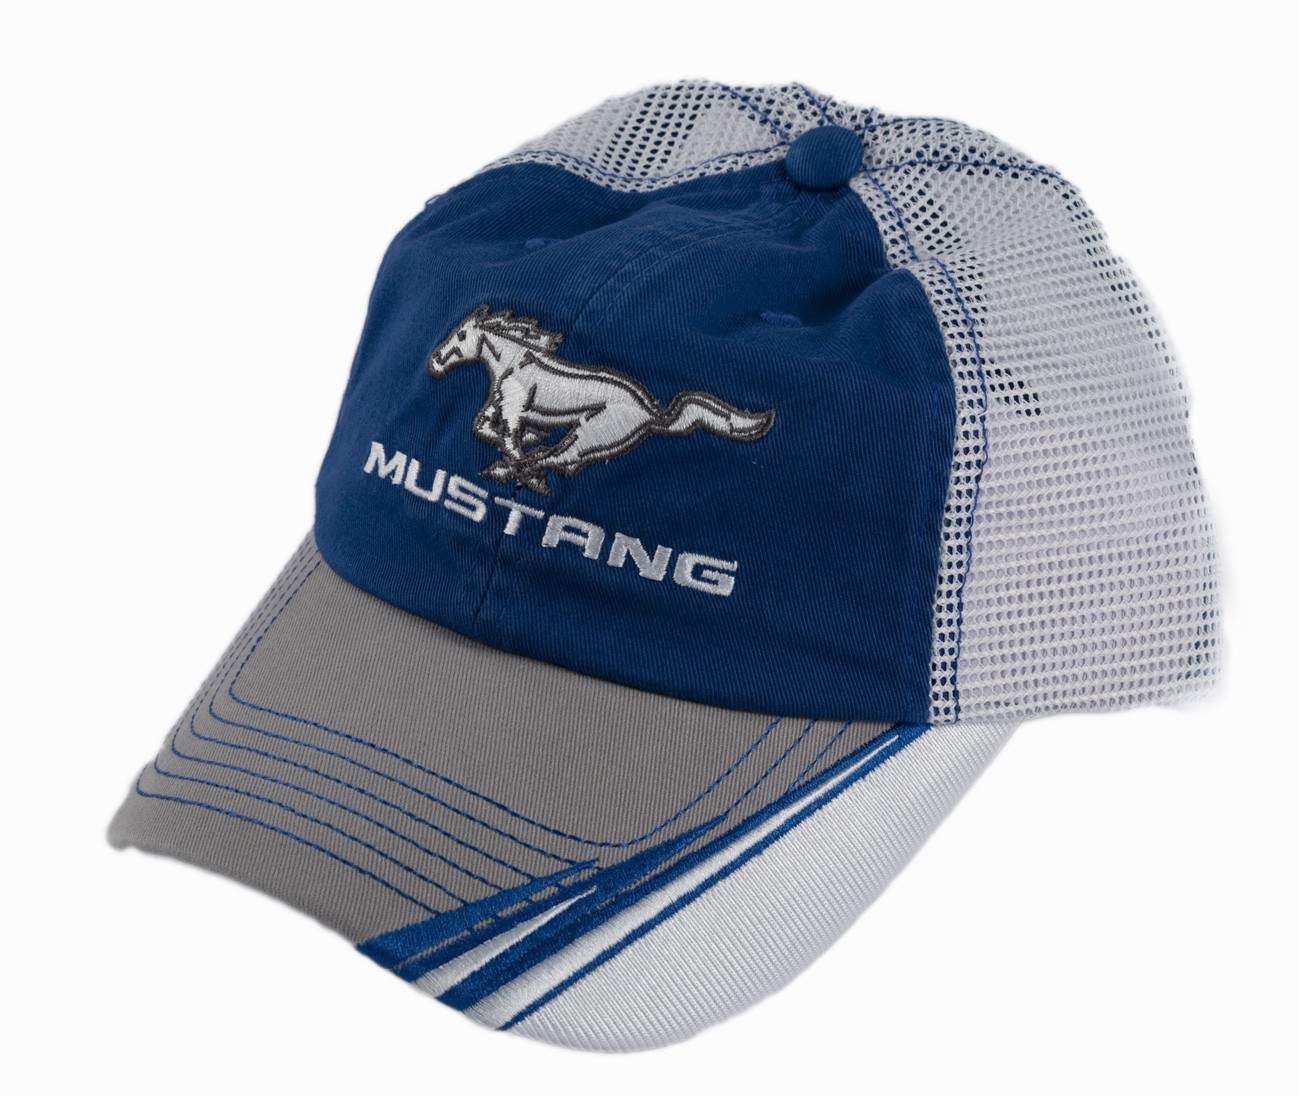 Blue & White Mustang Running Horse Pony Logo Adjustable Mesh Summer Cap Hat Cap